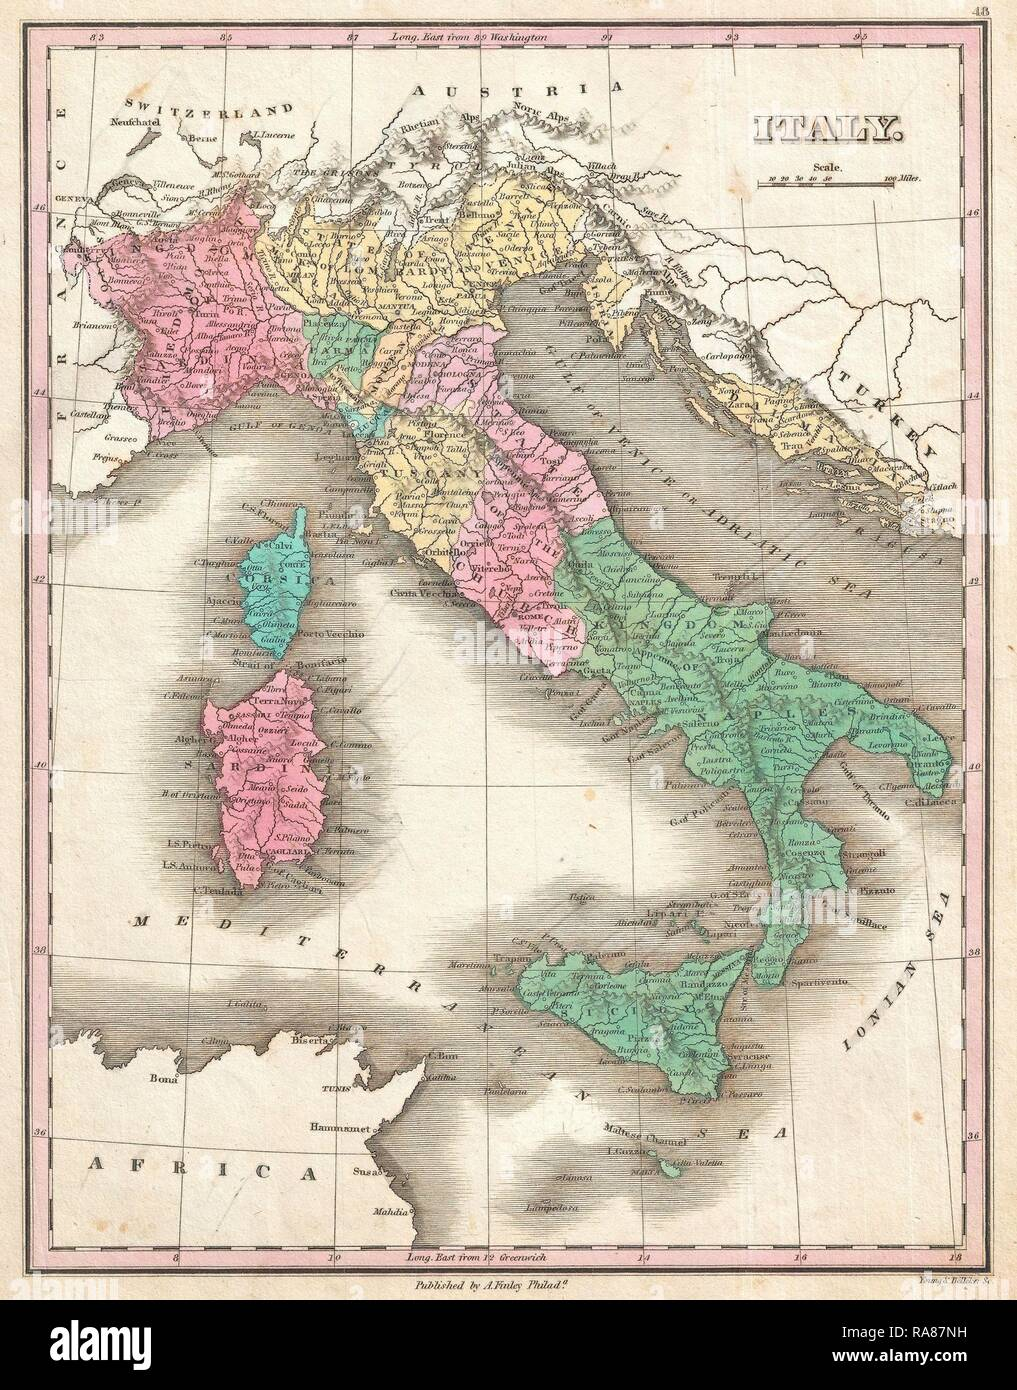 1827, Finley Map of Italy, Anthony Finley mapmaker of the United States in the 19th century. Reimagined - Stock Image